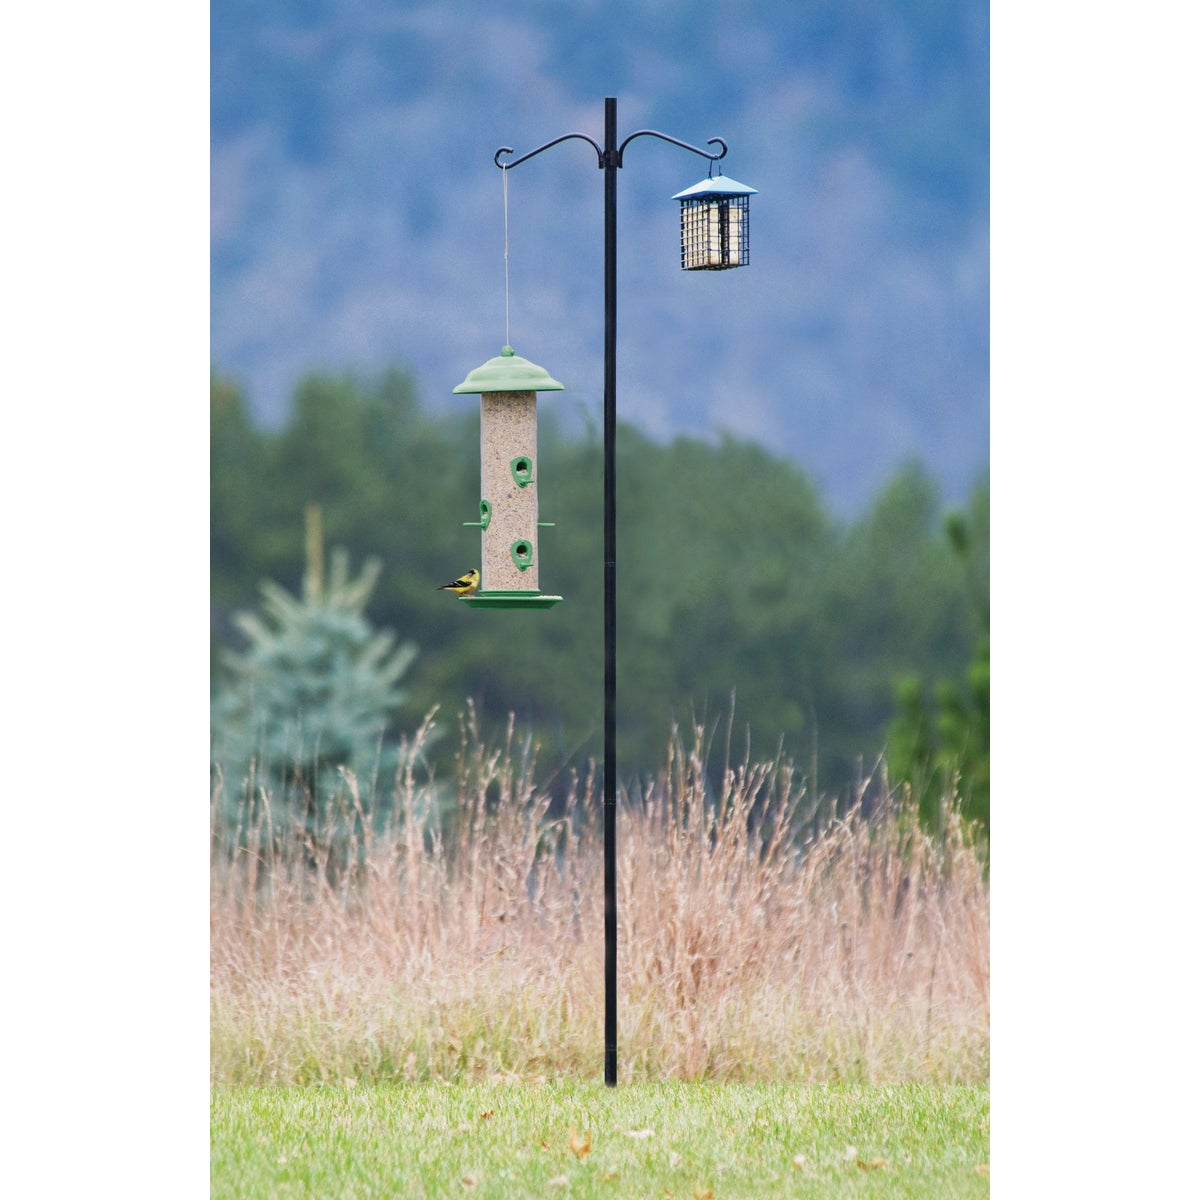 BIRD FEEDER POLE - 38016 by Hiatt Mfg